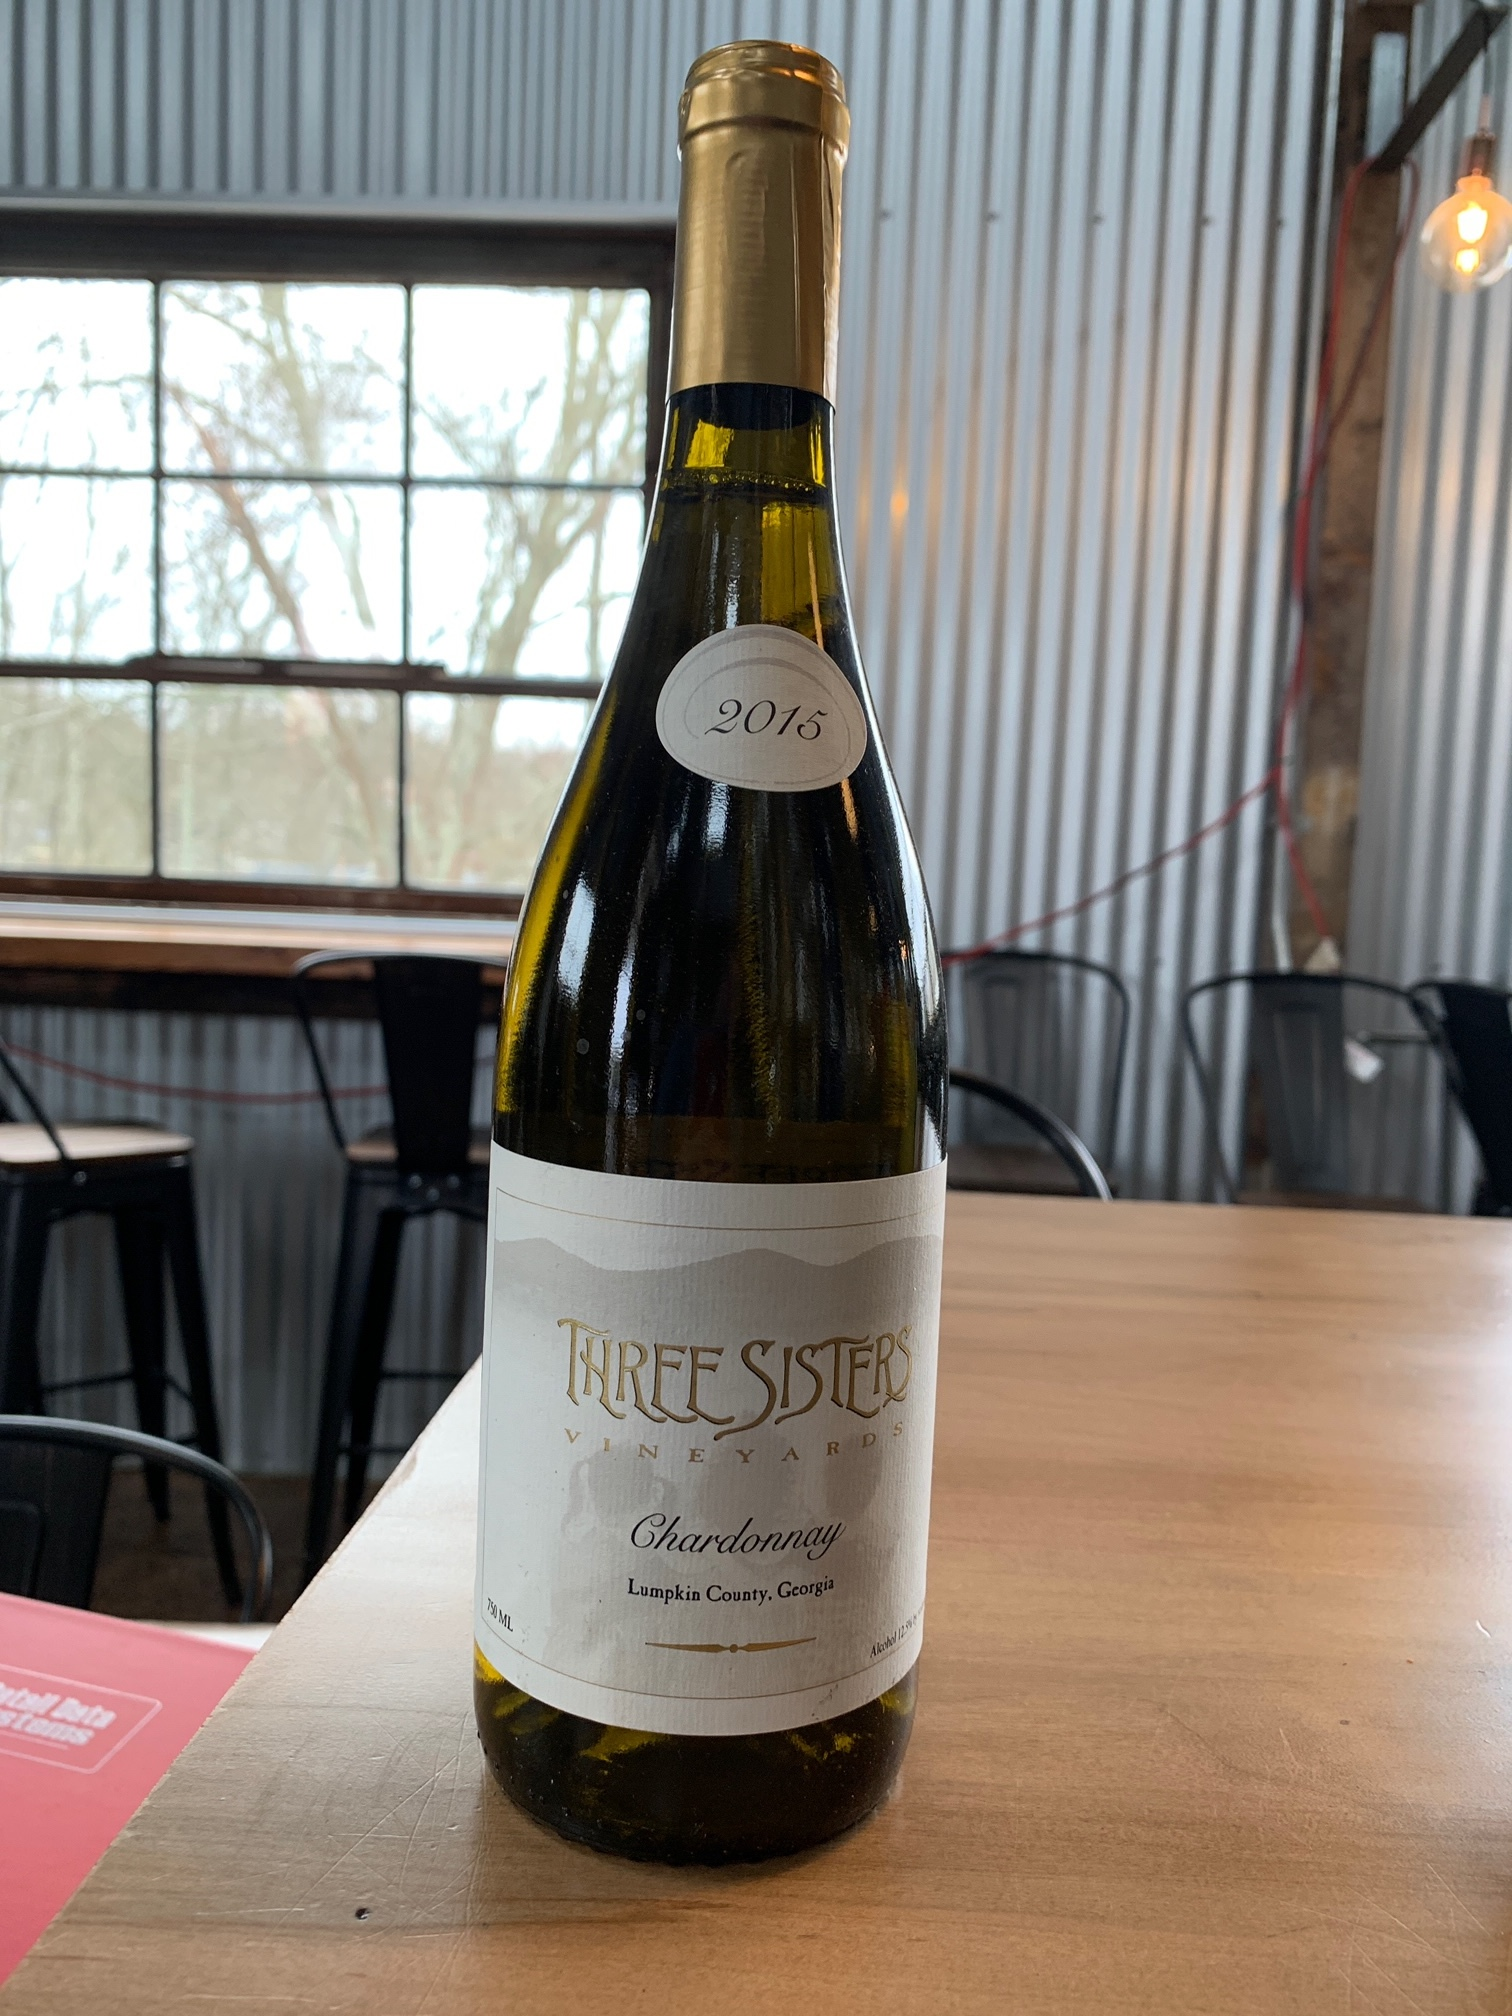 Three Sisters Chardonnay